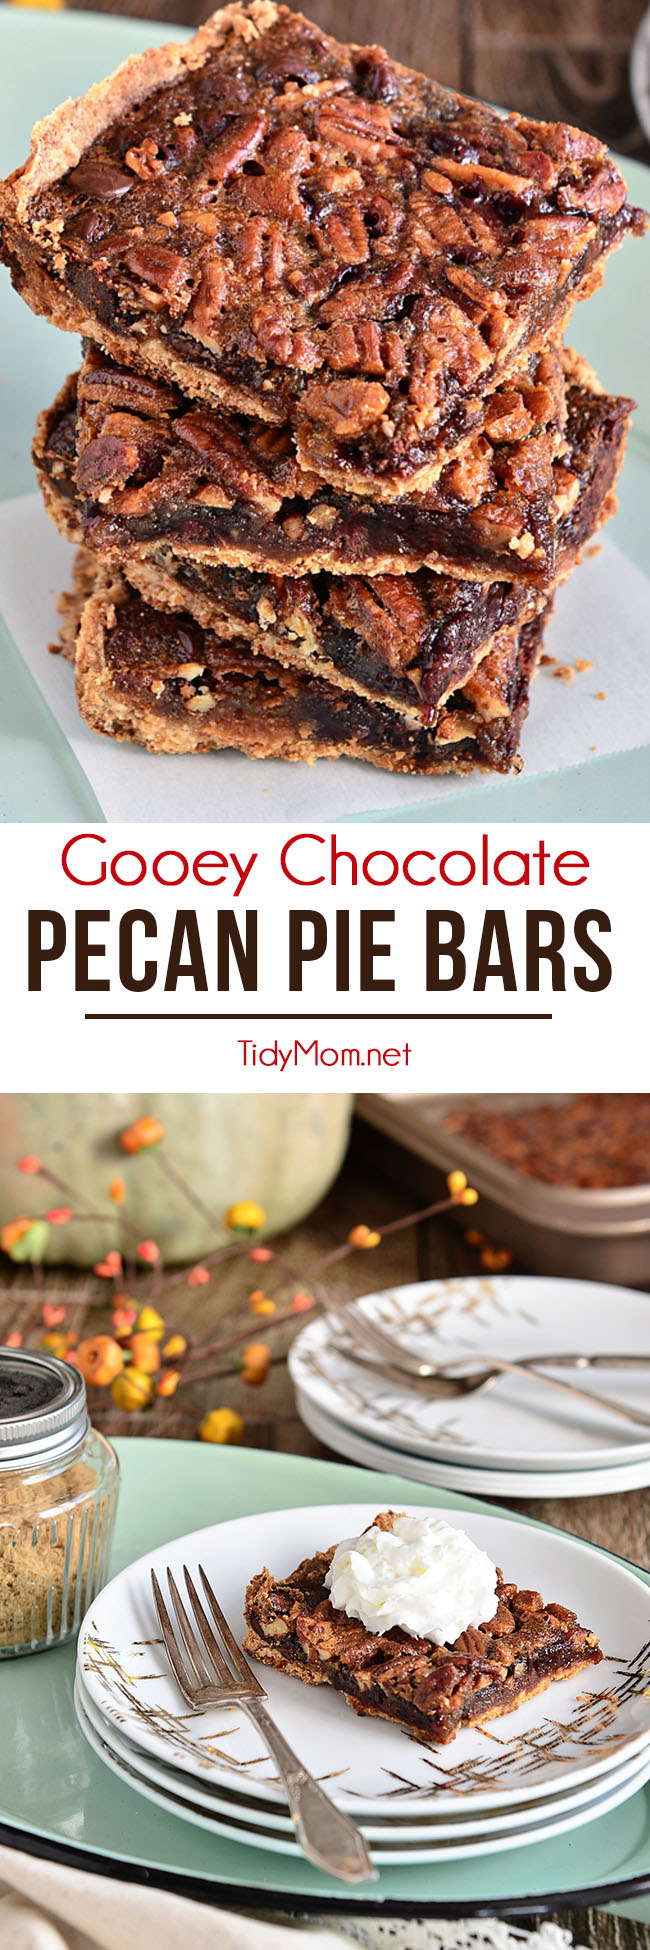 Fingers were licked, not a crumb left on a plate. This pecan pie bar recipe just may replace the pie altogether. Gooey Chocolate Pecan Pie Bars at TidyMom.net #pecanpie #chocolate #dessertbars #recipe